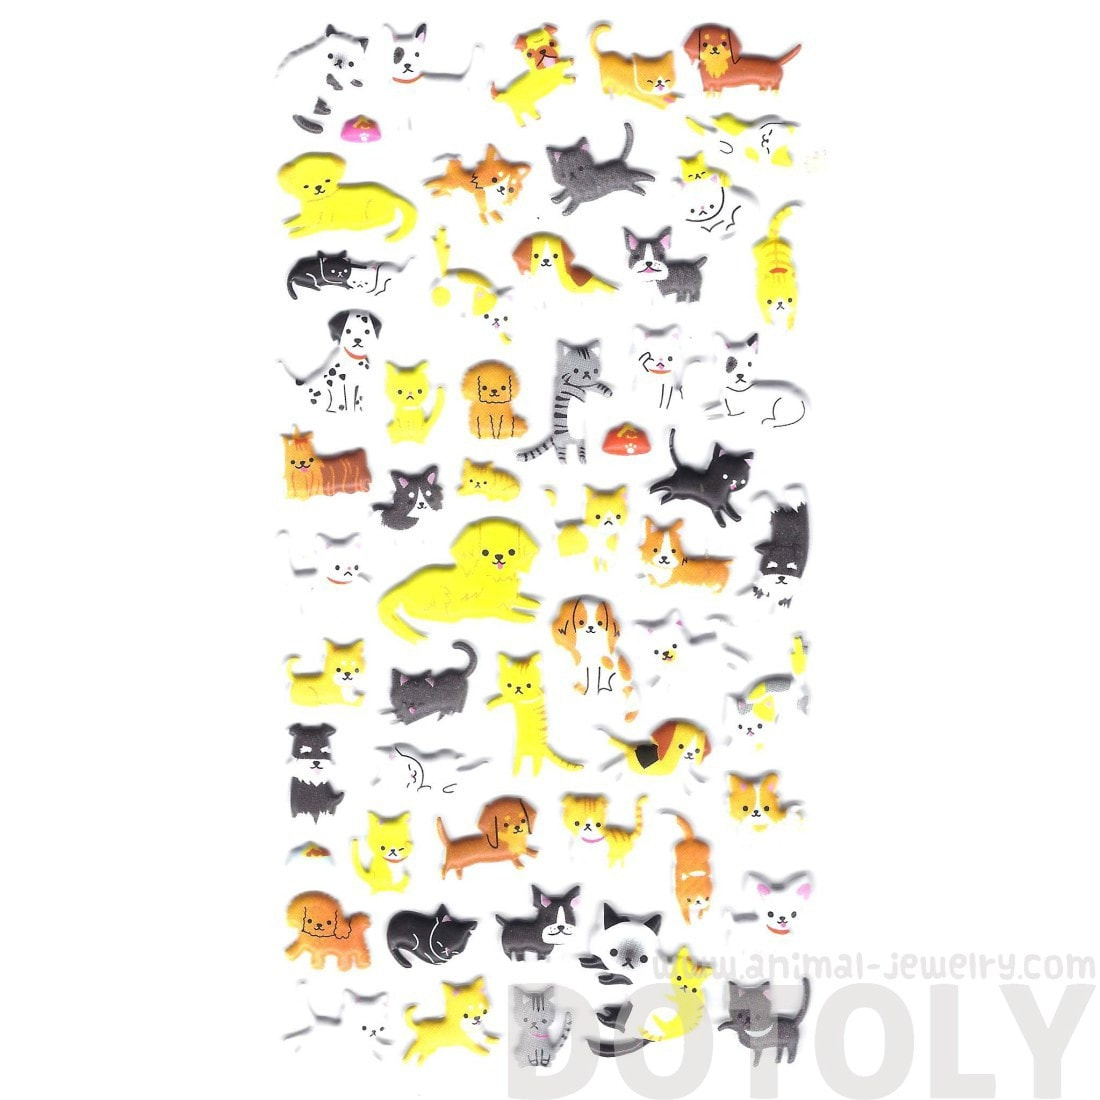 Kitty Cat Bull Terrier Corgi Dog Shaped Animal Themed Puffy Stickers